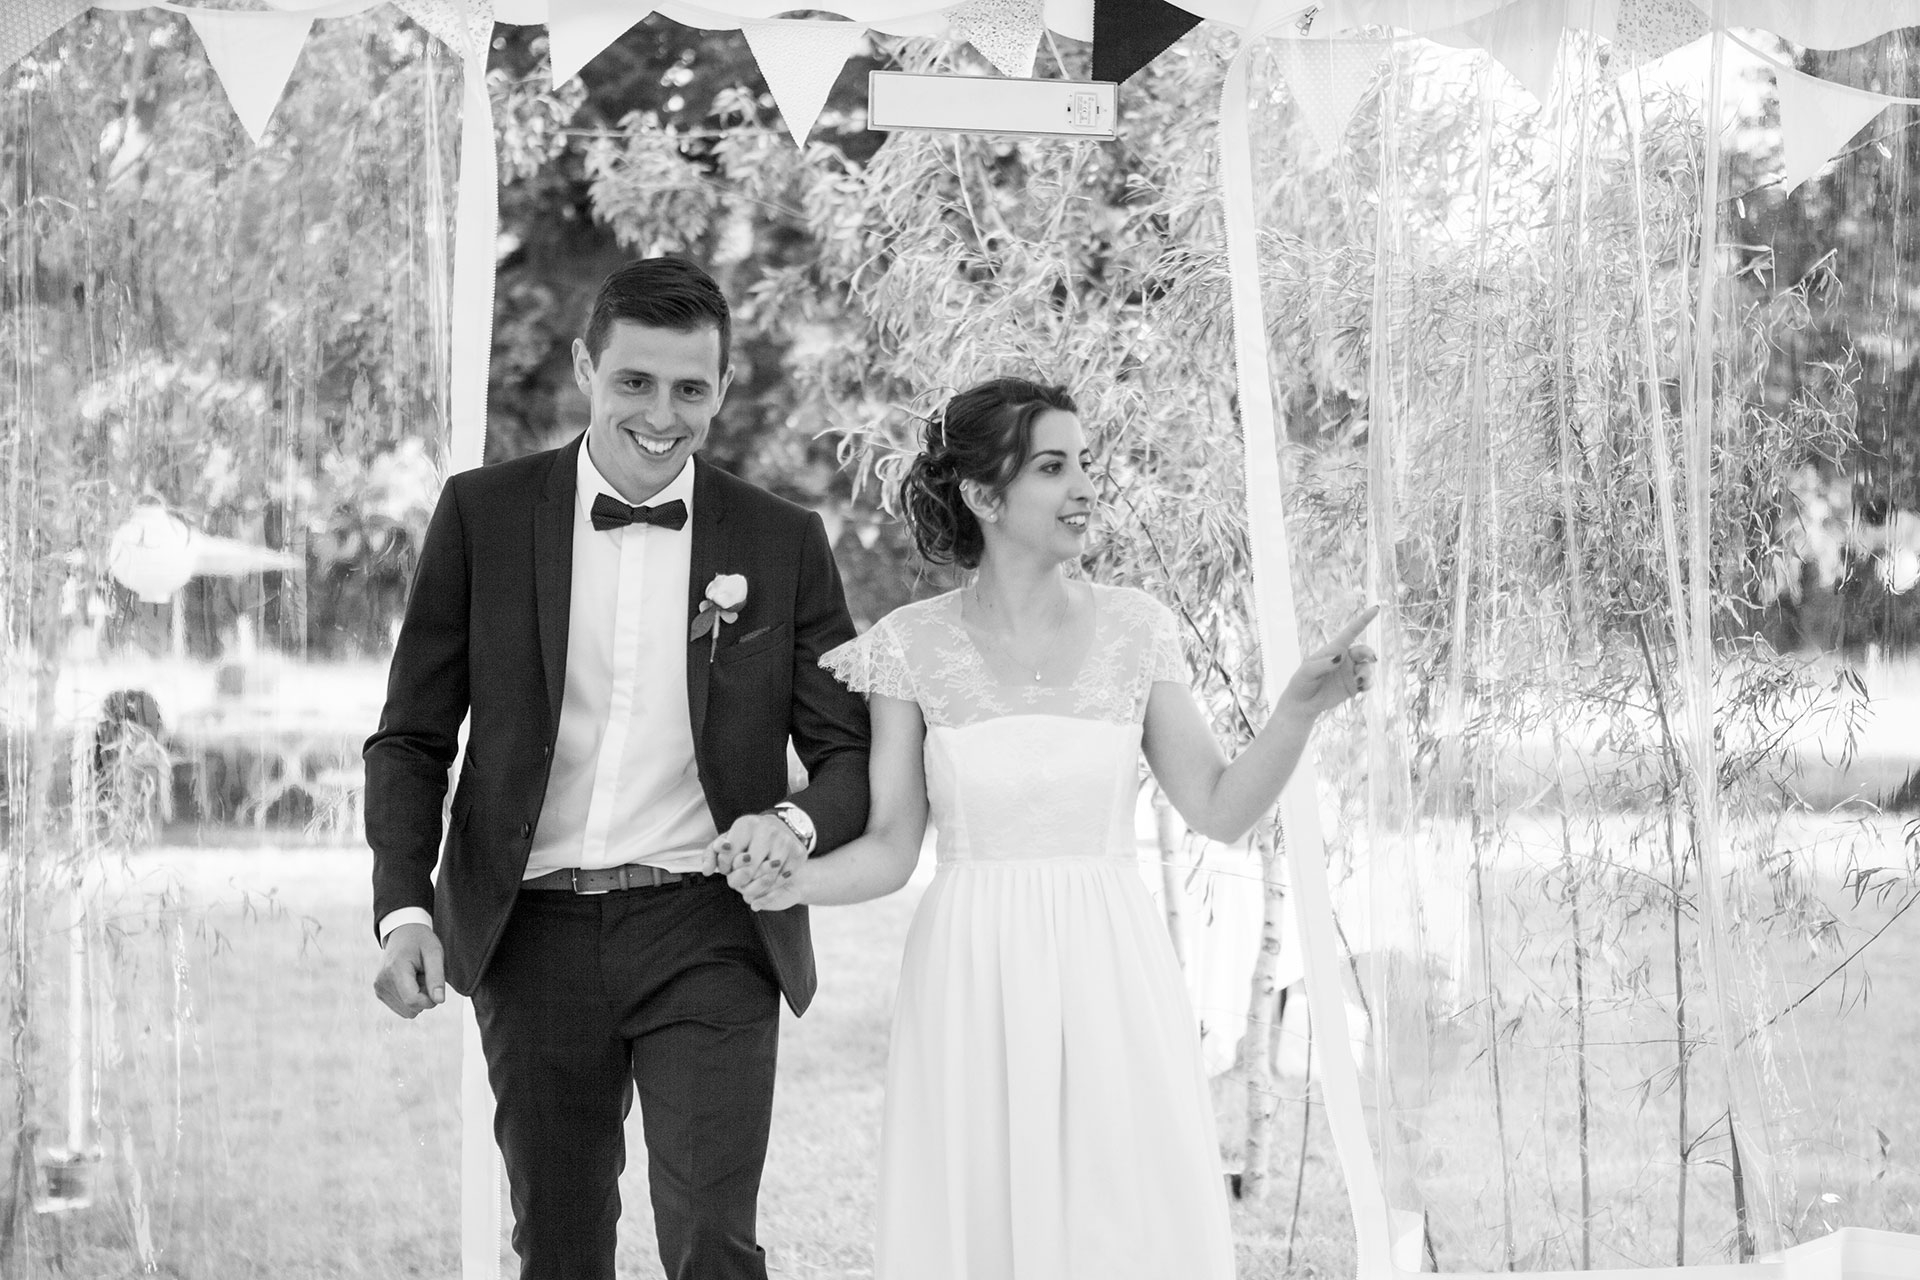 particuliers-evenements-mariages-oui-clementine&alexandre-64